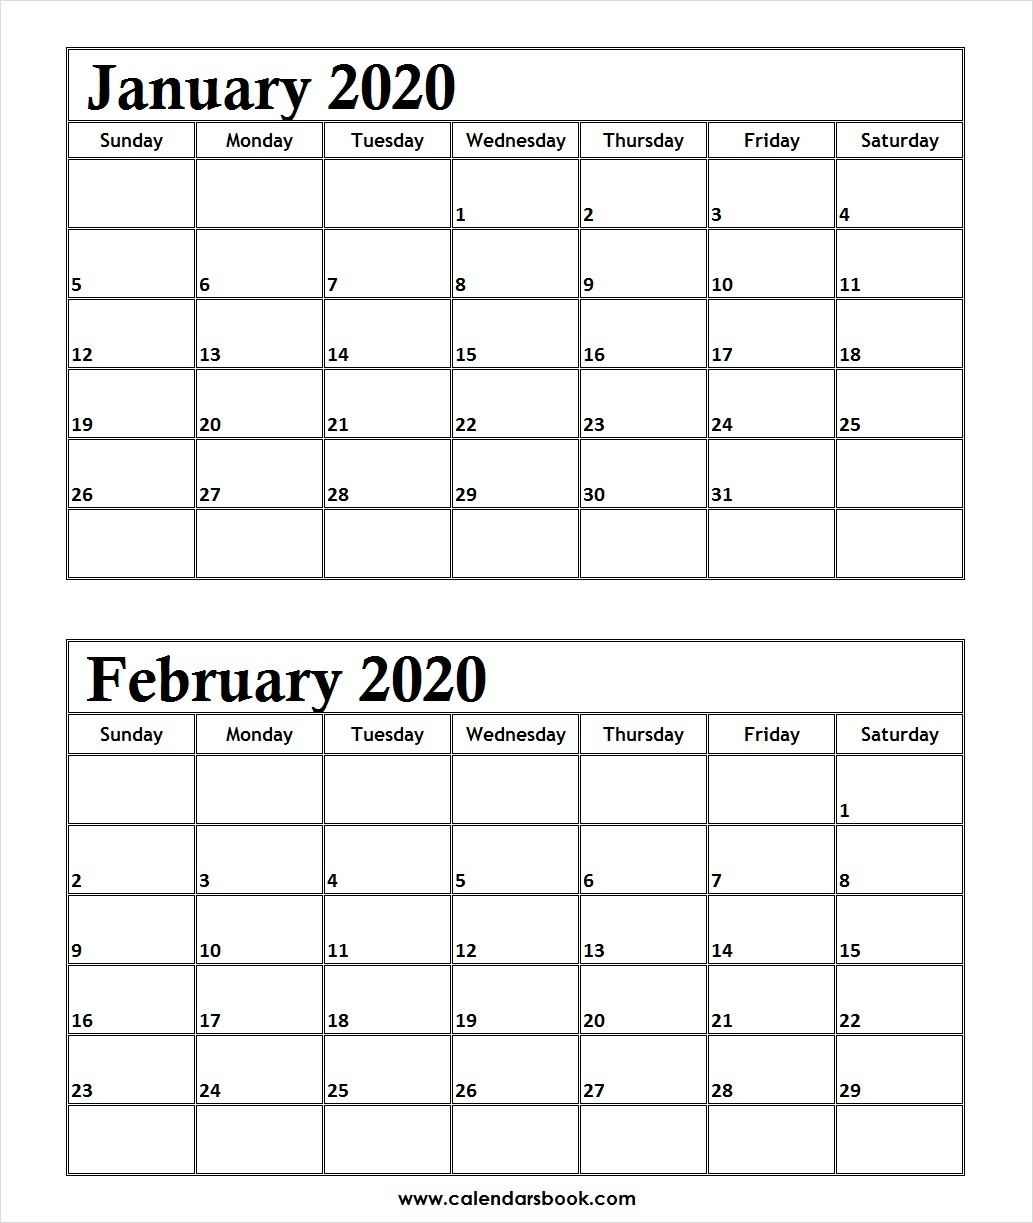 Calendar January And February 2020 | Calendar Template regarding Blank Two Month Calendar